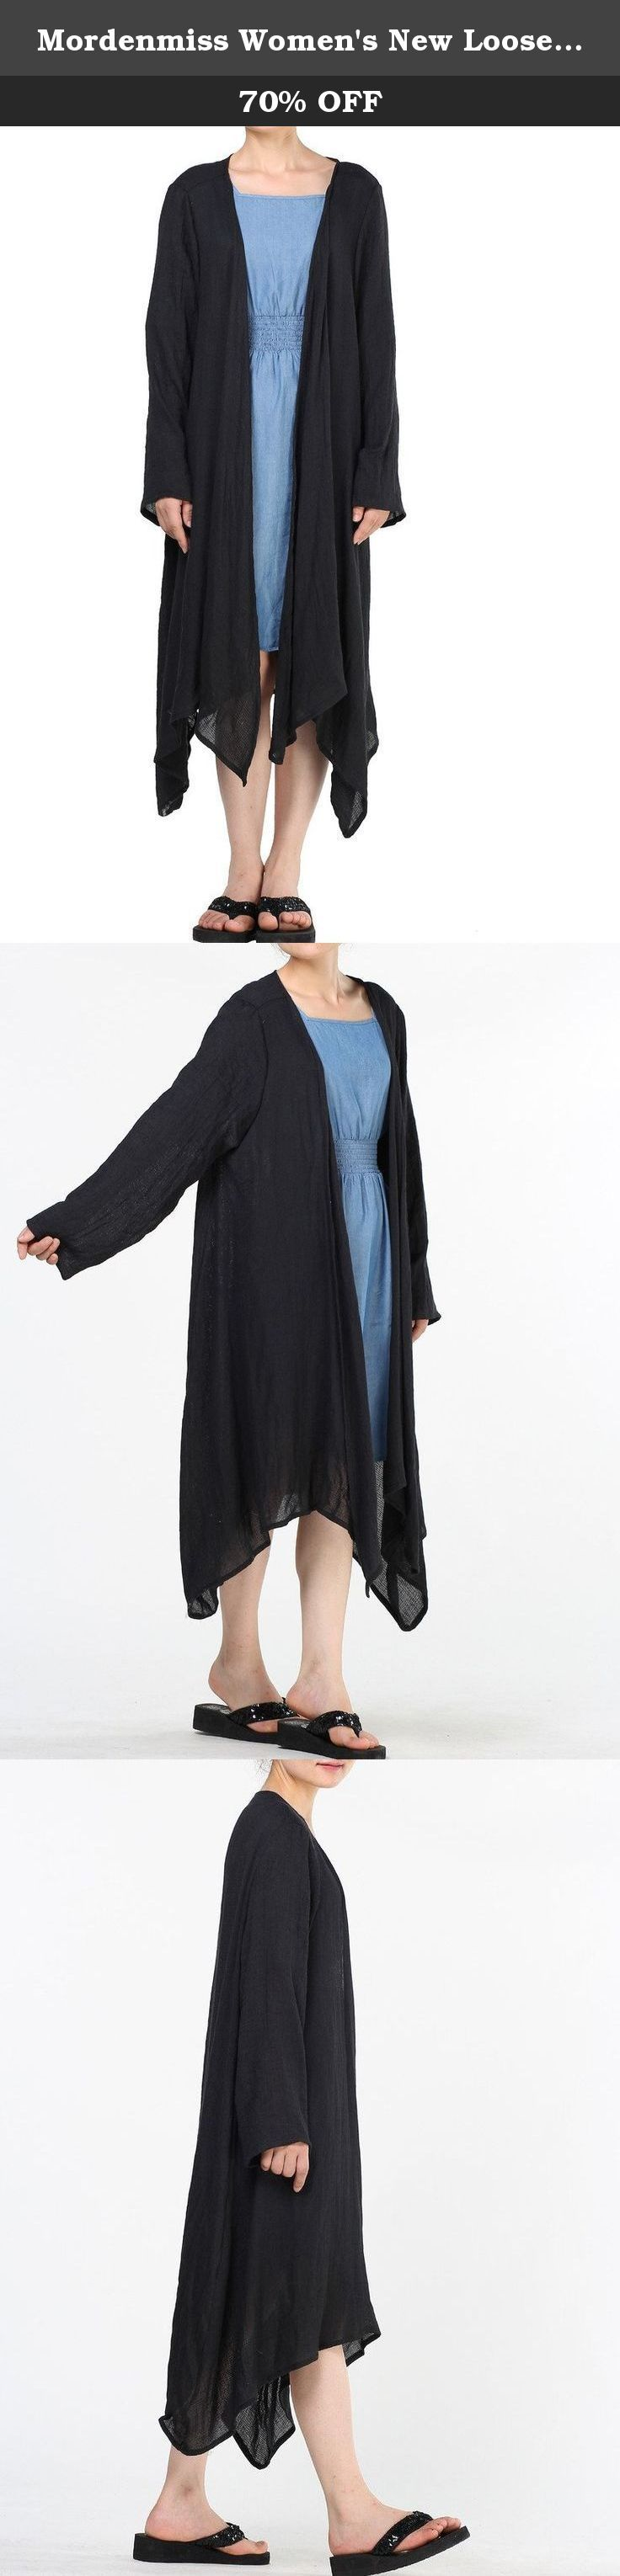 "Mordenmiss Women's New Loose Thin Garb Drape Open Front Cardigan L Long Sleeve Black. Mordenmiss has registered US Trademark ""Mordenmiss"" . This item is only provided by Mordenmiss, and did not authorize any second stores to sell our items. If other seller follow selling our items, please kindly notice us or report to Amazon directly. Mordenmiss only gurantee our quality, we do not guarantee the quality of other sellers. Size Information Size M : Length:37""-43"", Bust:47"", Sleeve…"